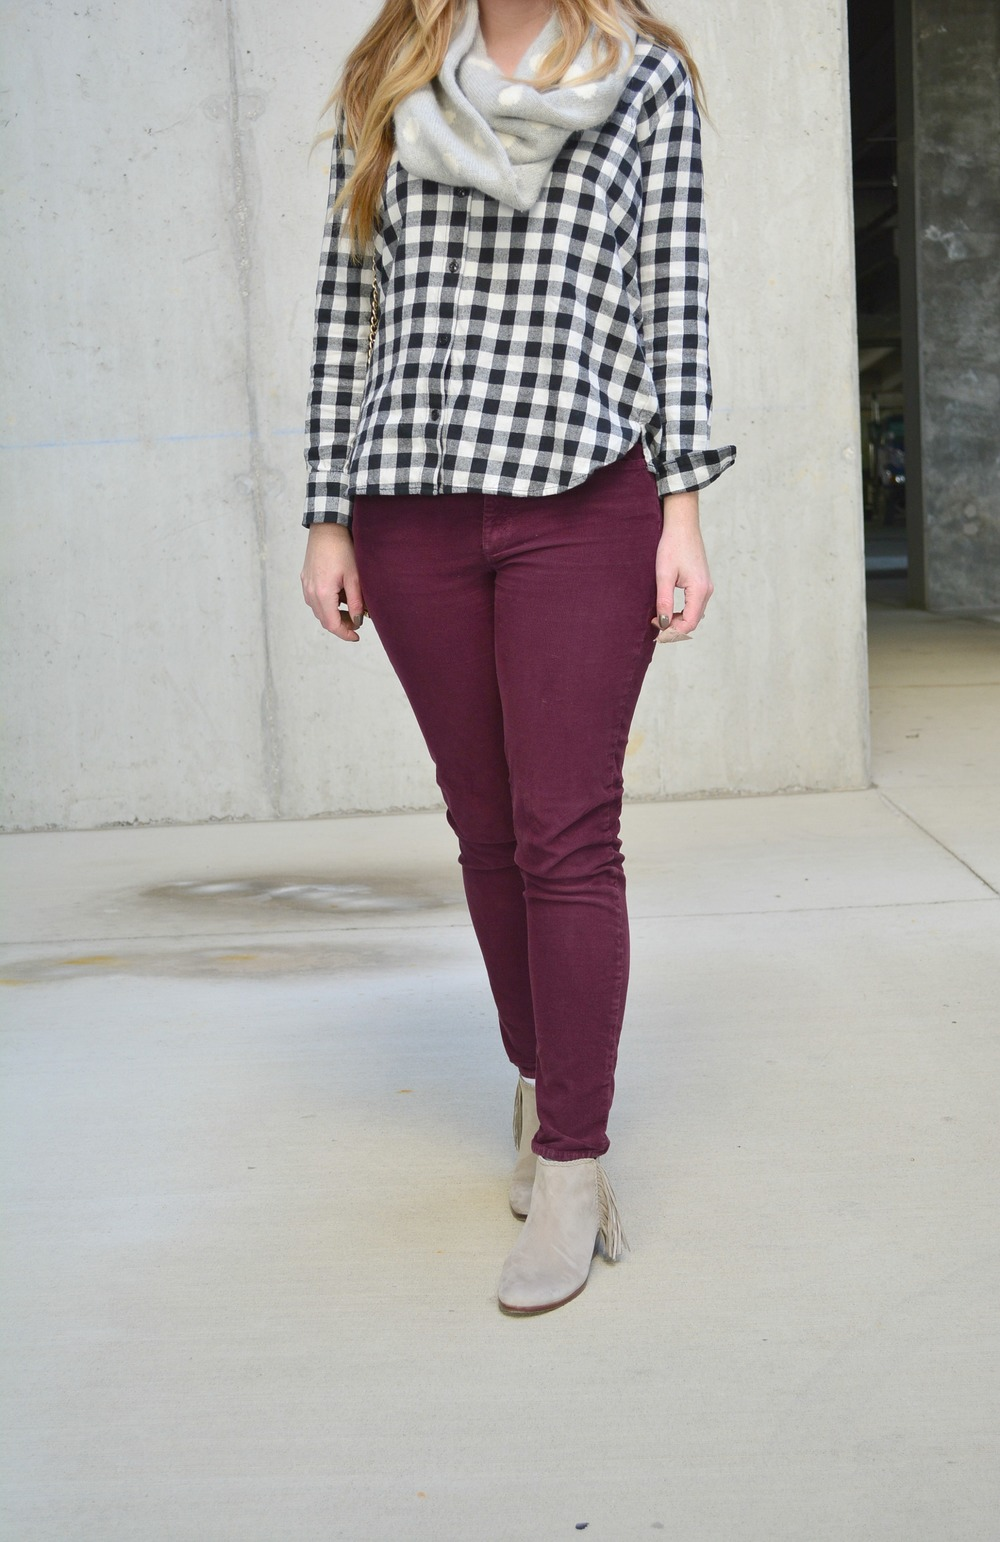 Madewell plaid with merlot cords outfit